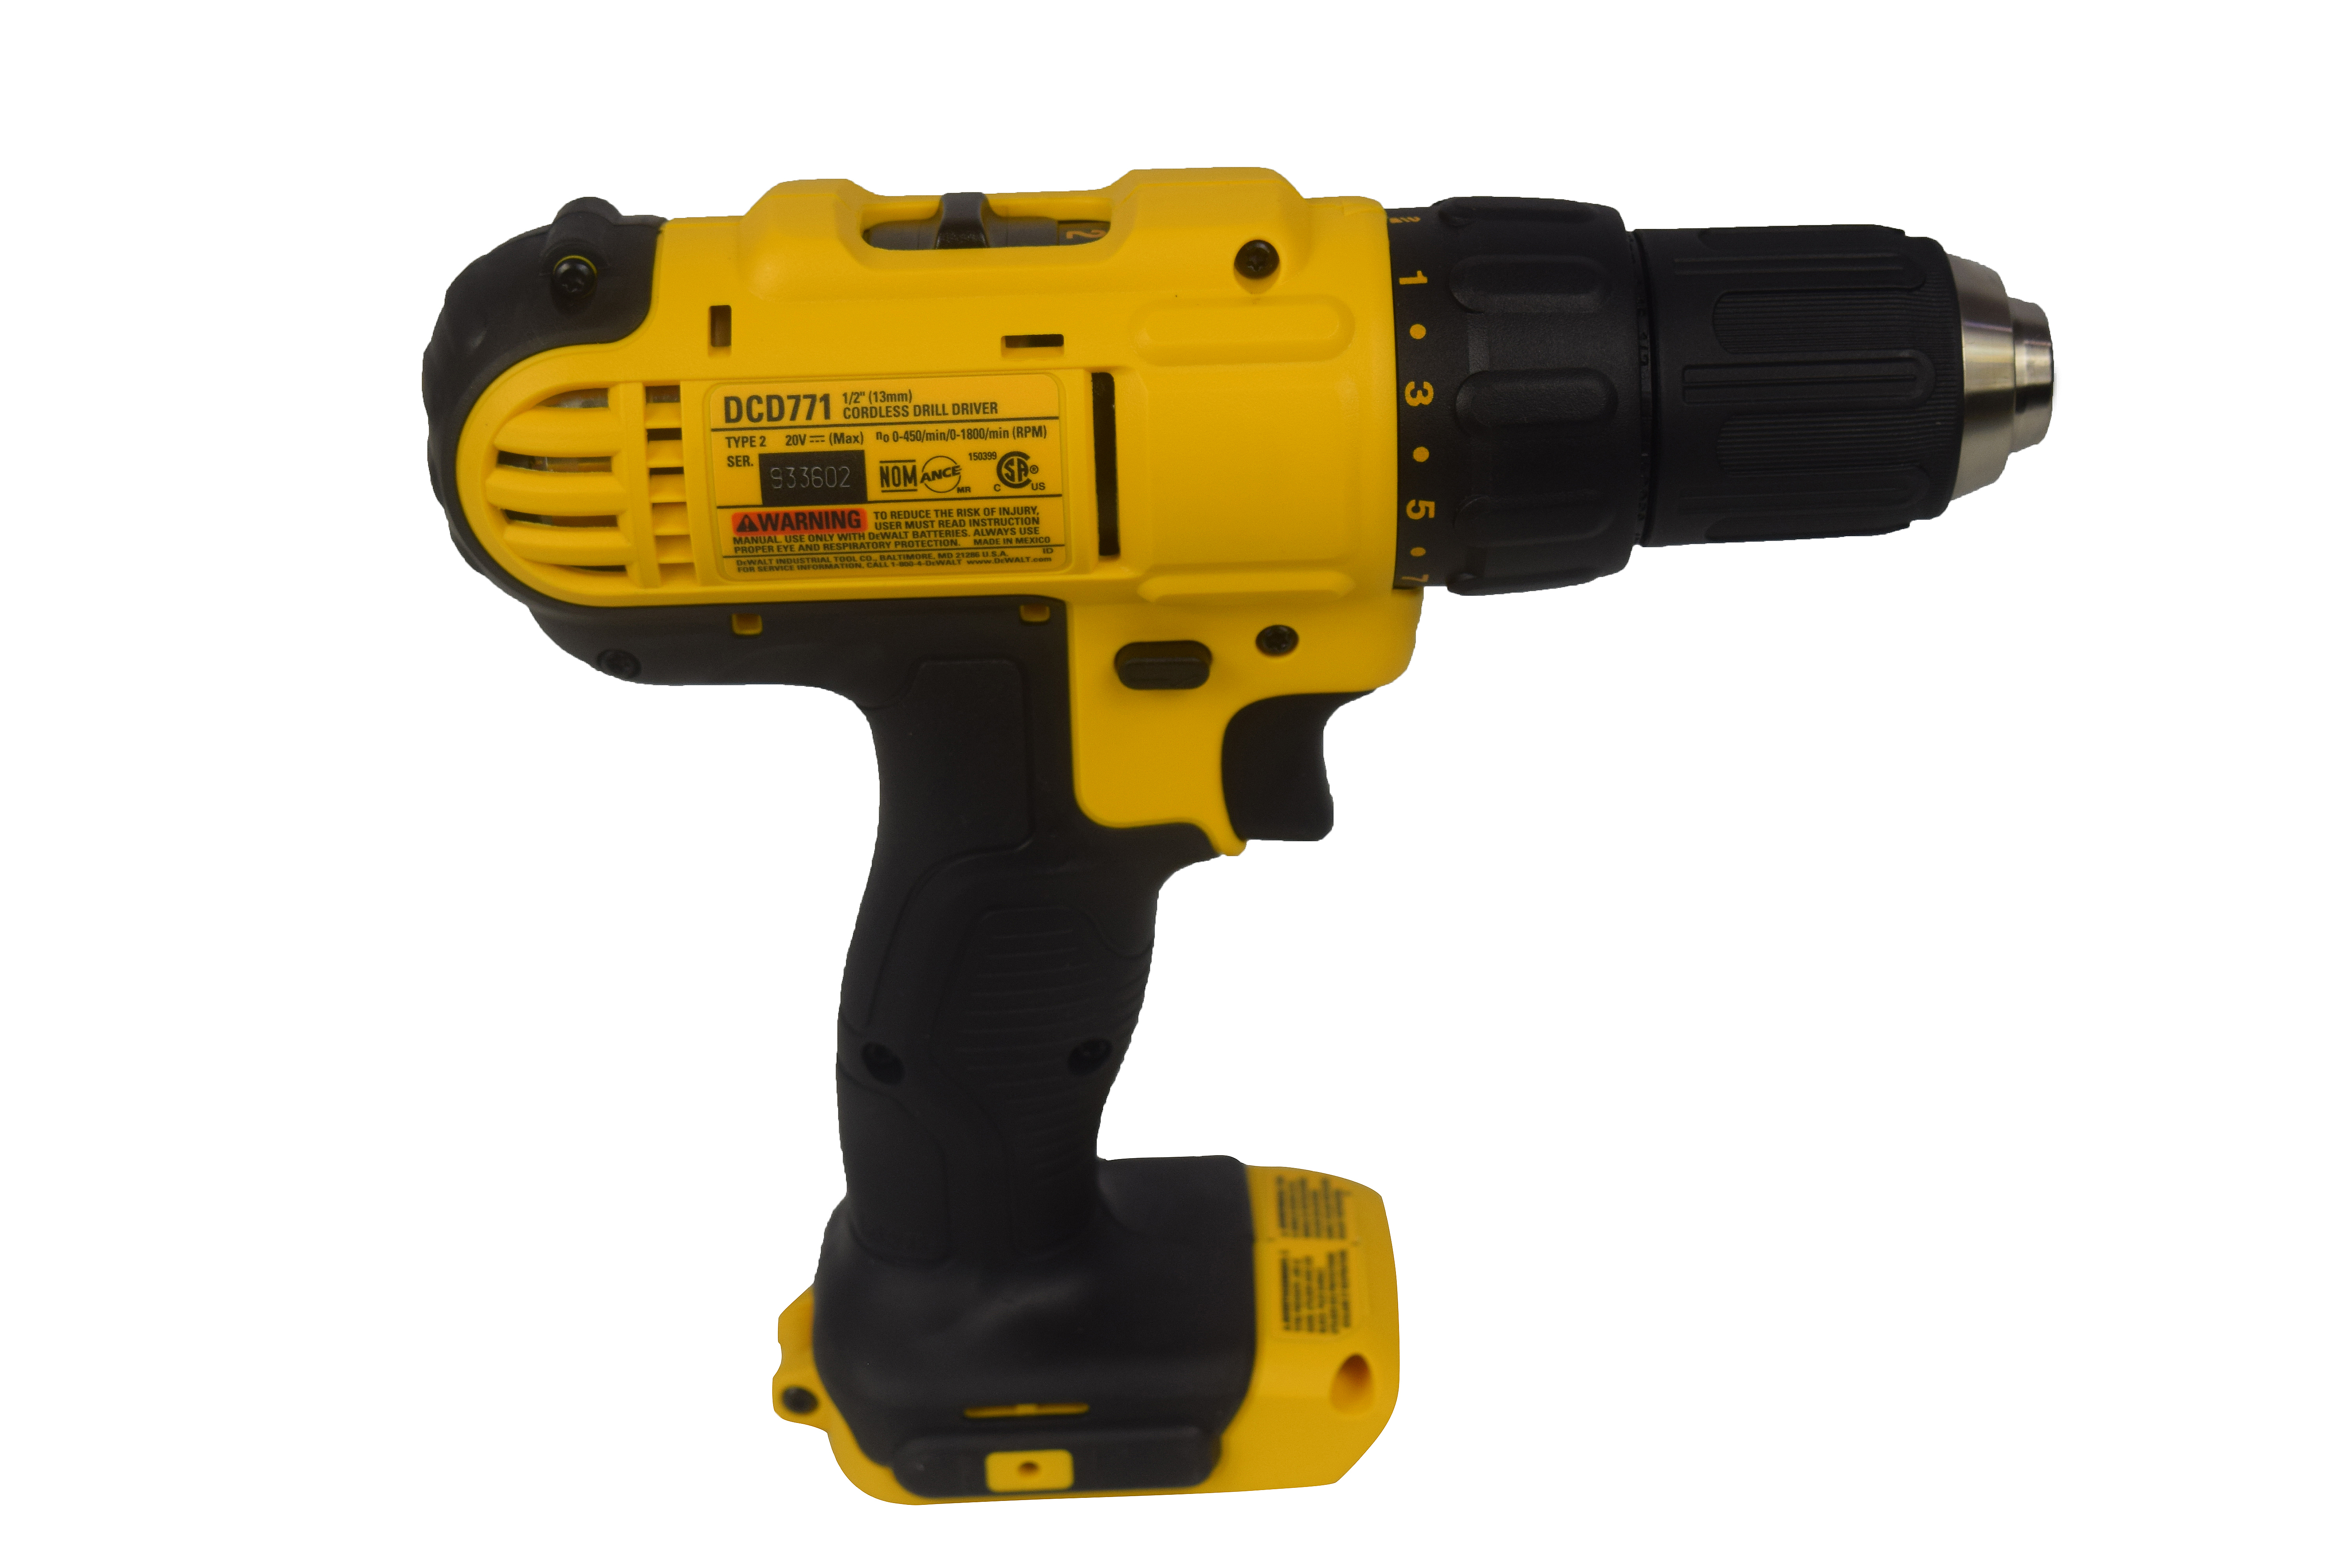 Dewalt-DCD771B-20V-1-2inch-Lithium-Ion-Cordless-Compact-Drill-Driver-image-3